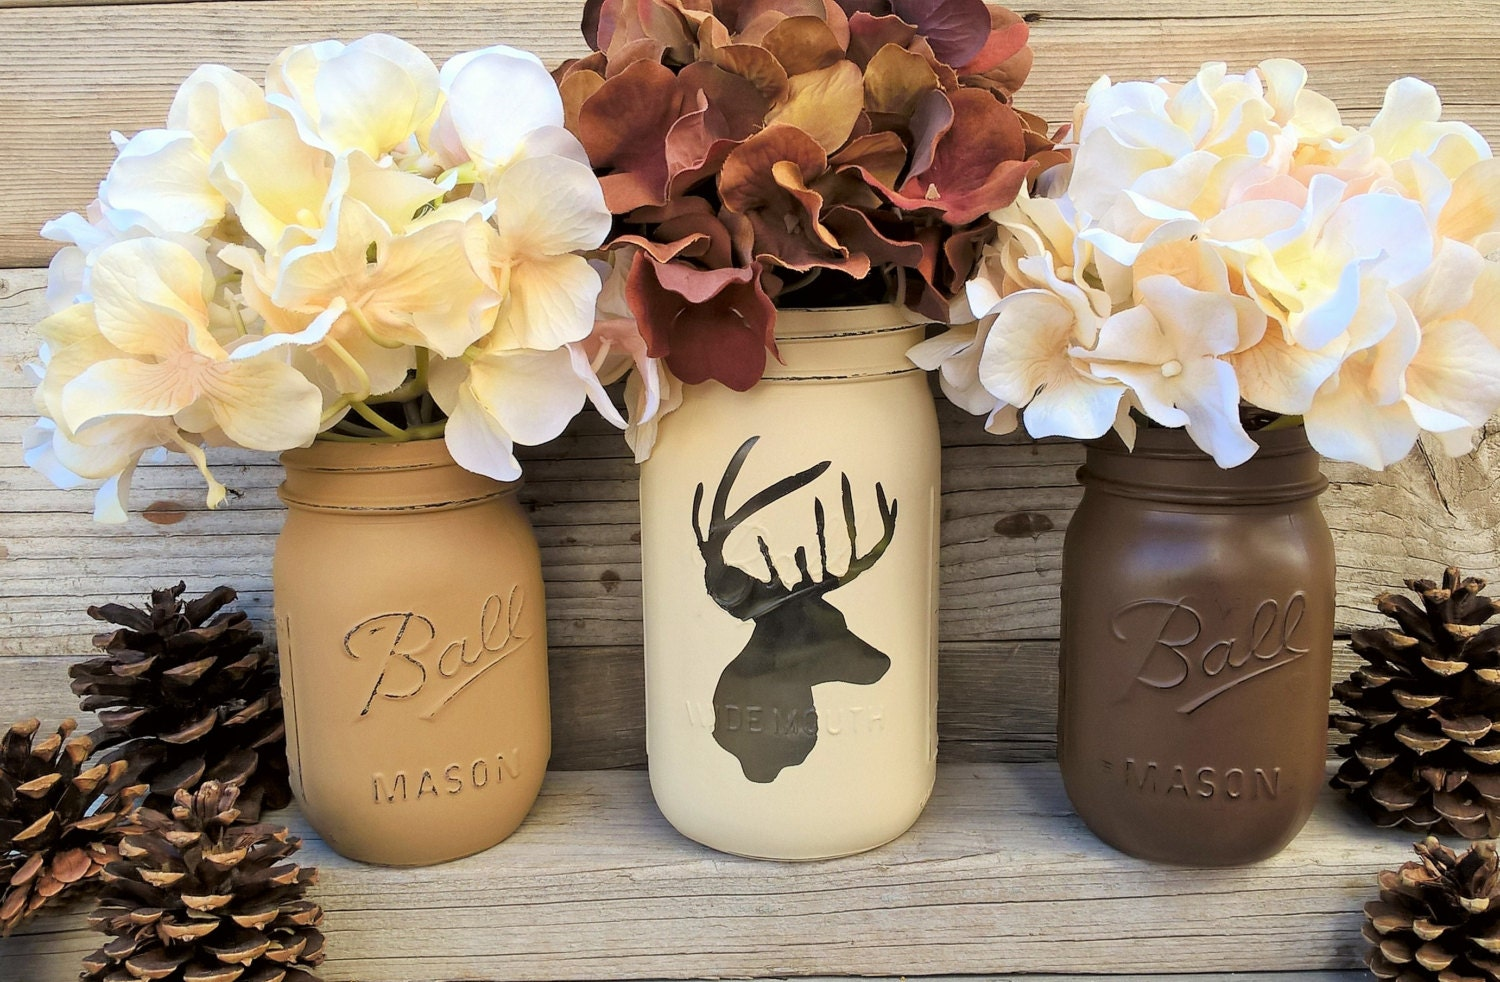 Deer Decor Gift Rustic Home Decor Christmas Gift Cabin Decor Painted